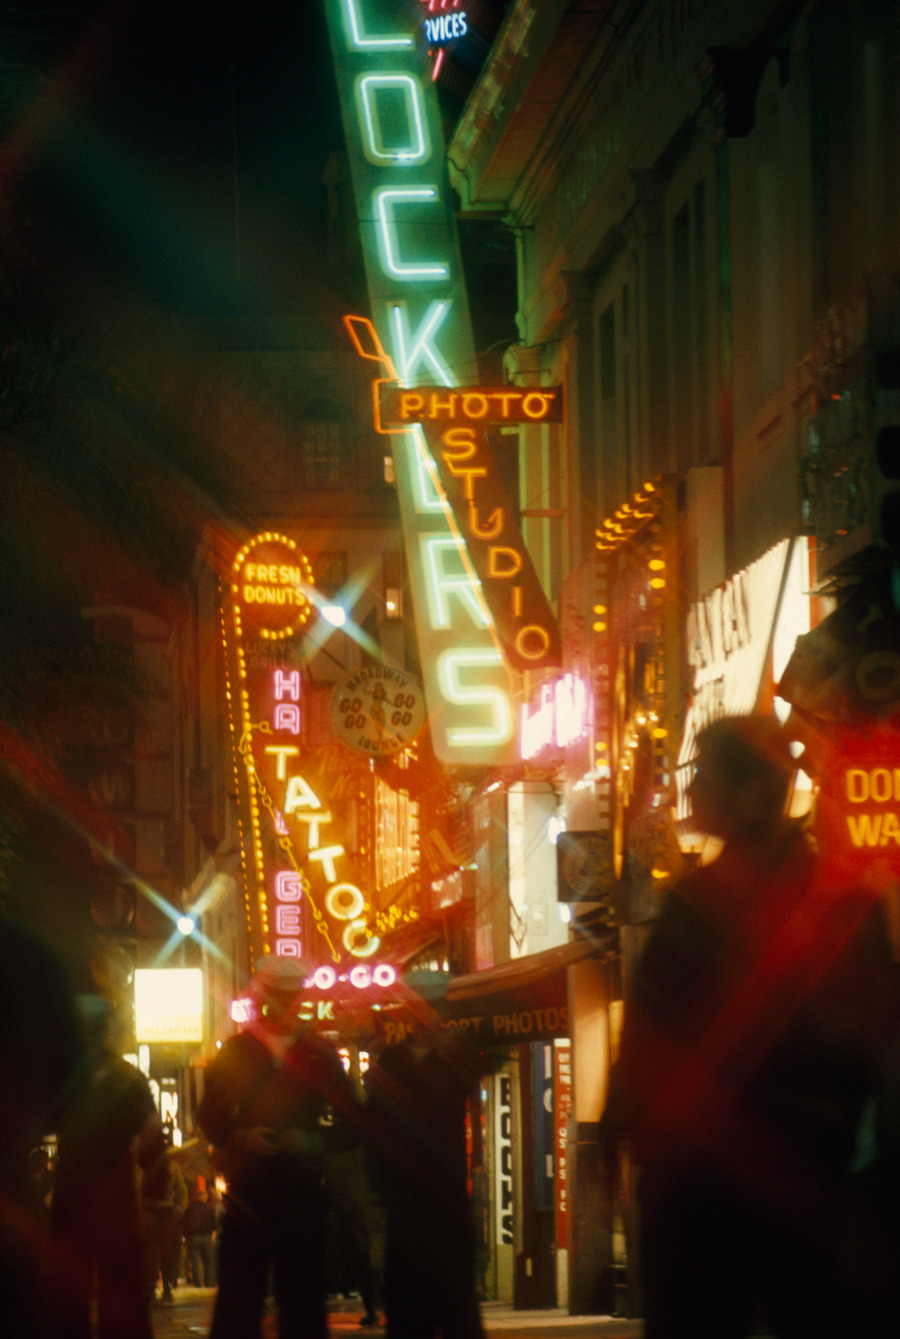 Neon signs blur the night scene as marines walk on the street in San Diego, California, July 1969.Photograph by James L. Amos, National Geographic